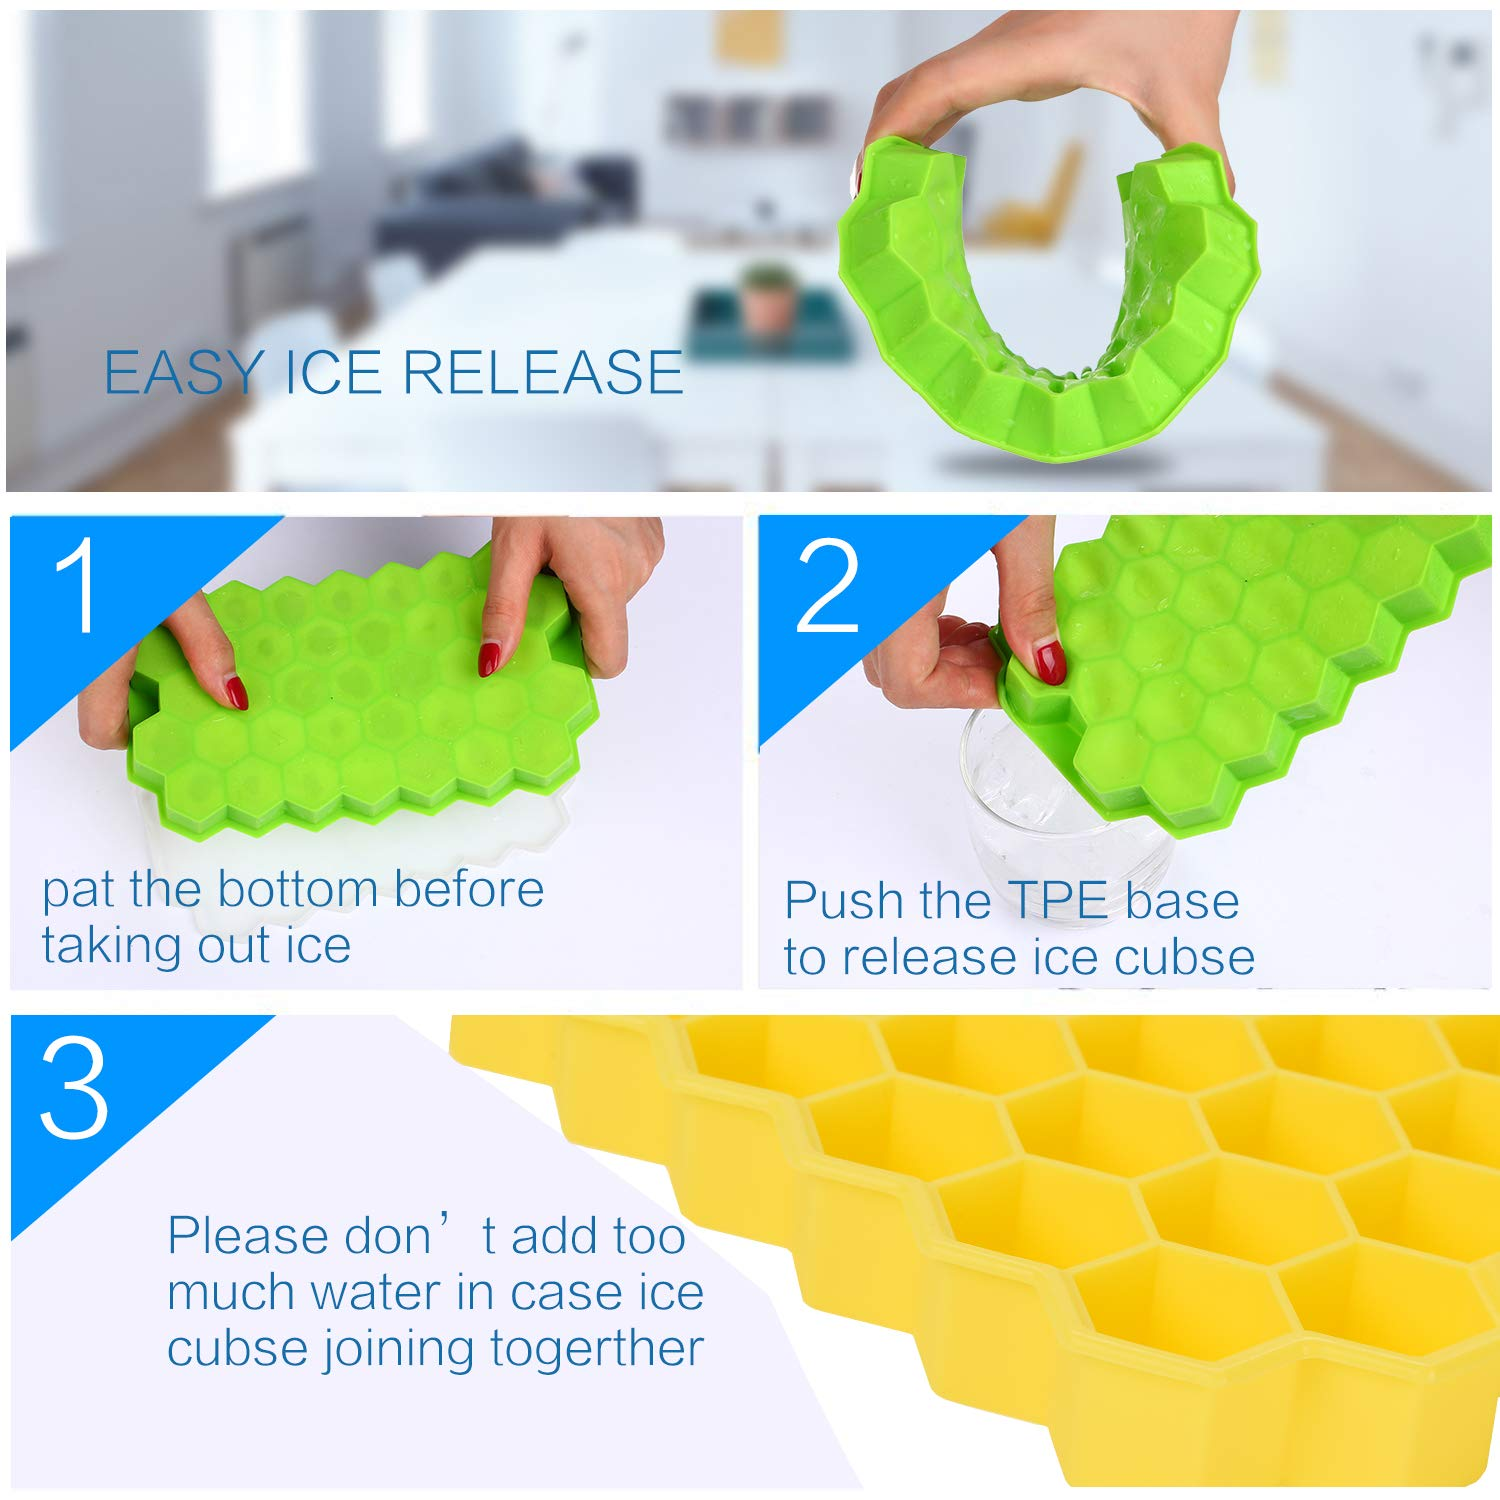 Ice Cube Trays with Lids,Bomstar 2 Pack Food Grade Silica Gel Flexible 74 Ice Trays with Spill-Resistant Removable Lid,BPA Free Ice Cube Molds for Whiskey Storage,Cocktail,Beverages by BomStar (Image #2)